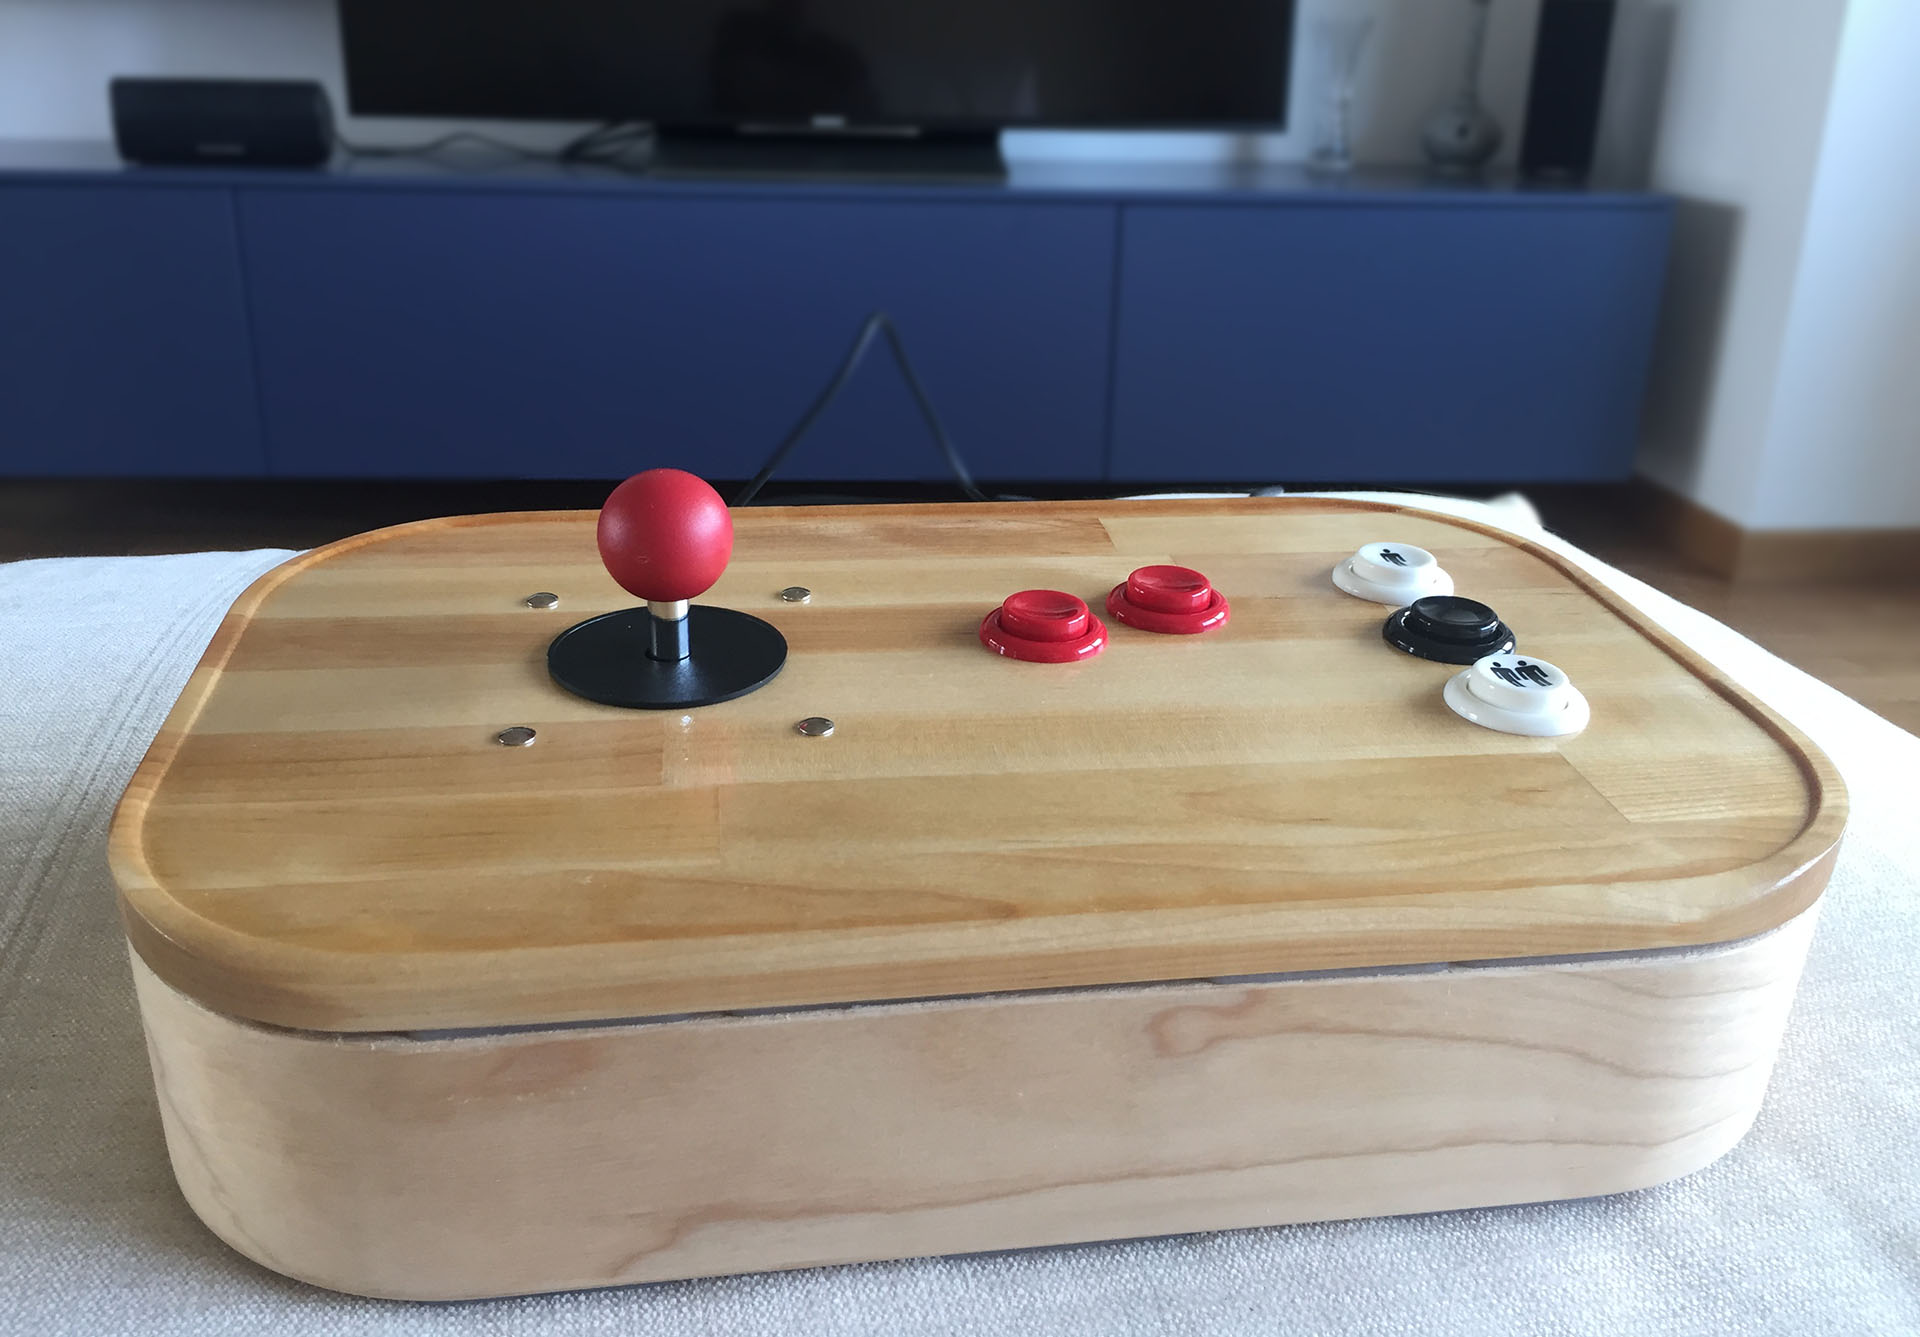 4-way DIY Arcade Stick (IKEA mod) - RetroPie Forum